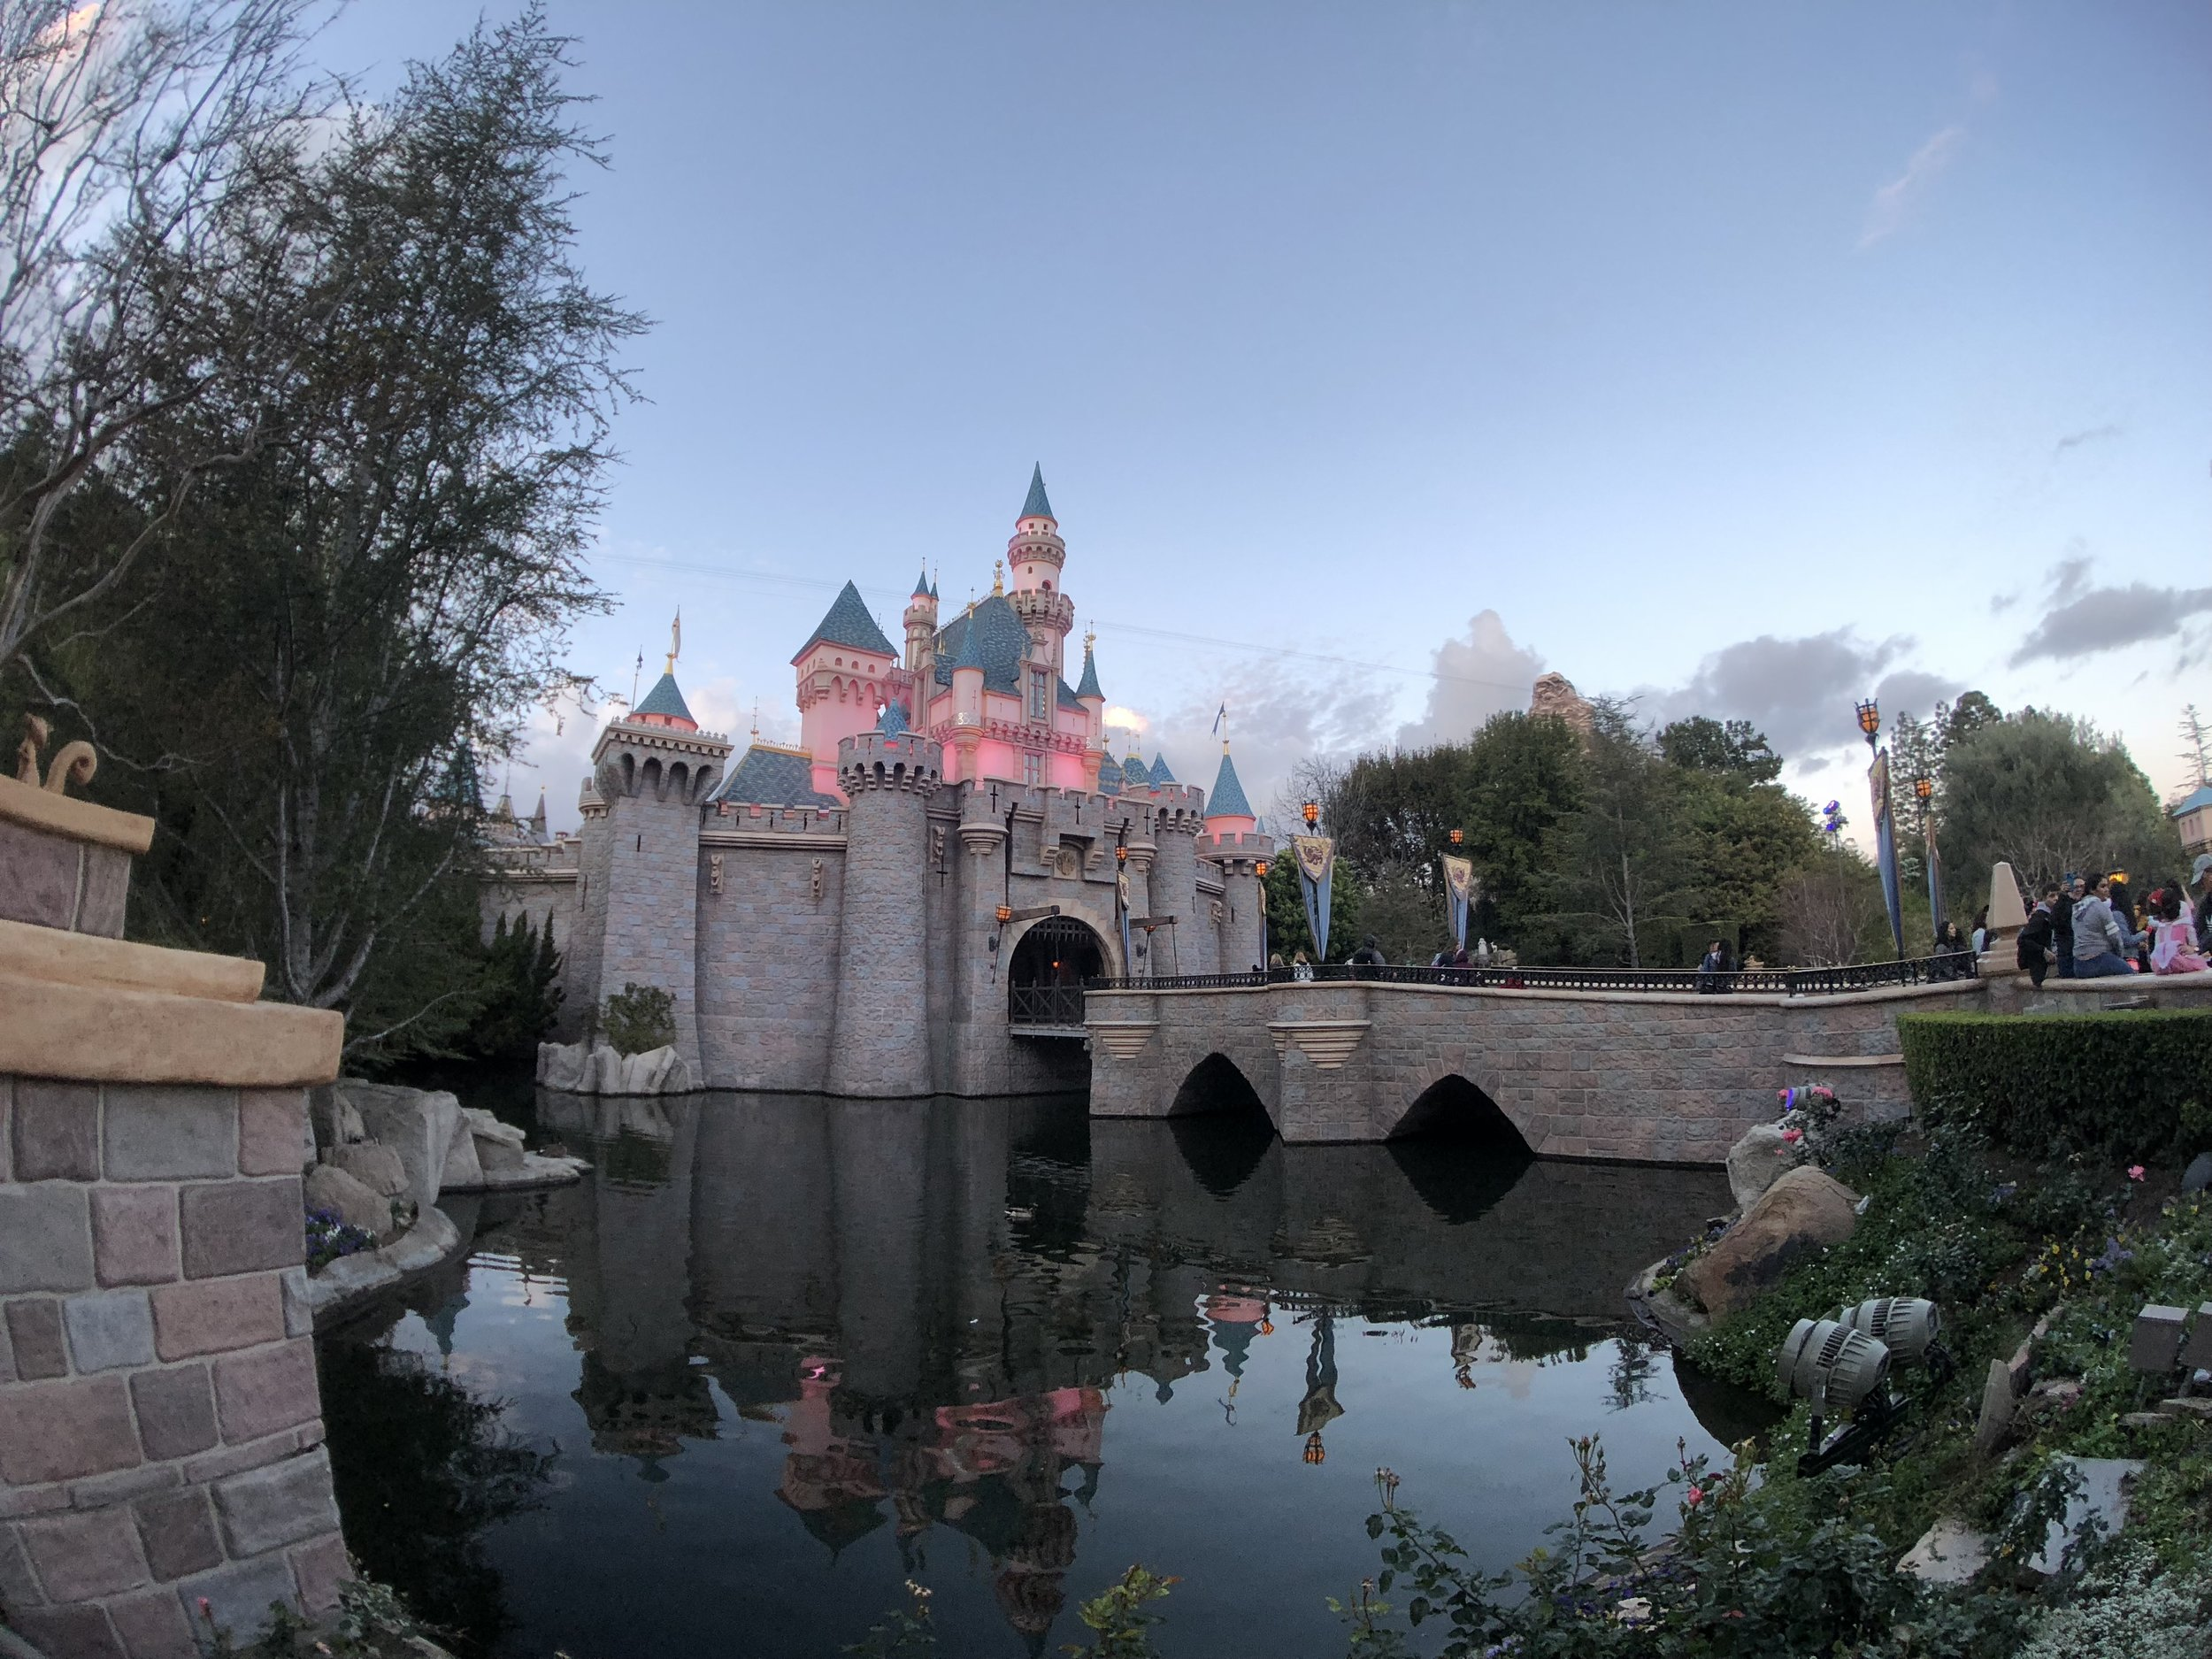 The Disneyland Castle from the same spot with the Moment Superfish lens attached. (Click to enlarge.)